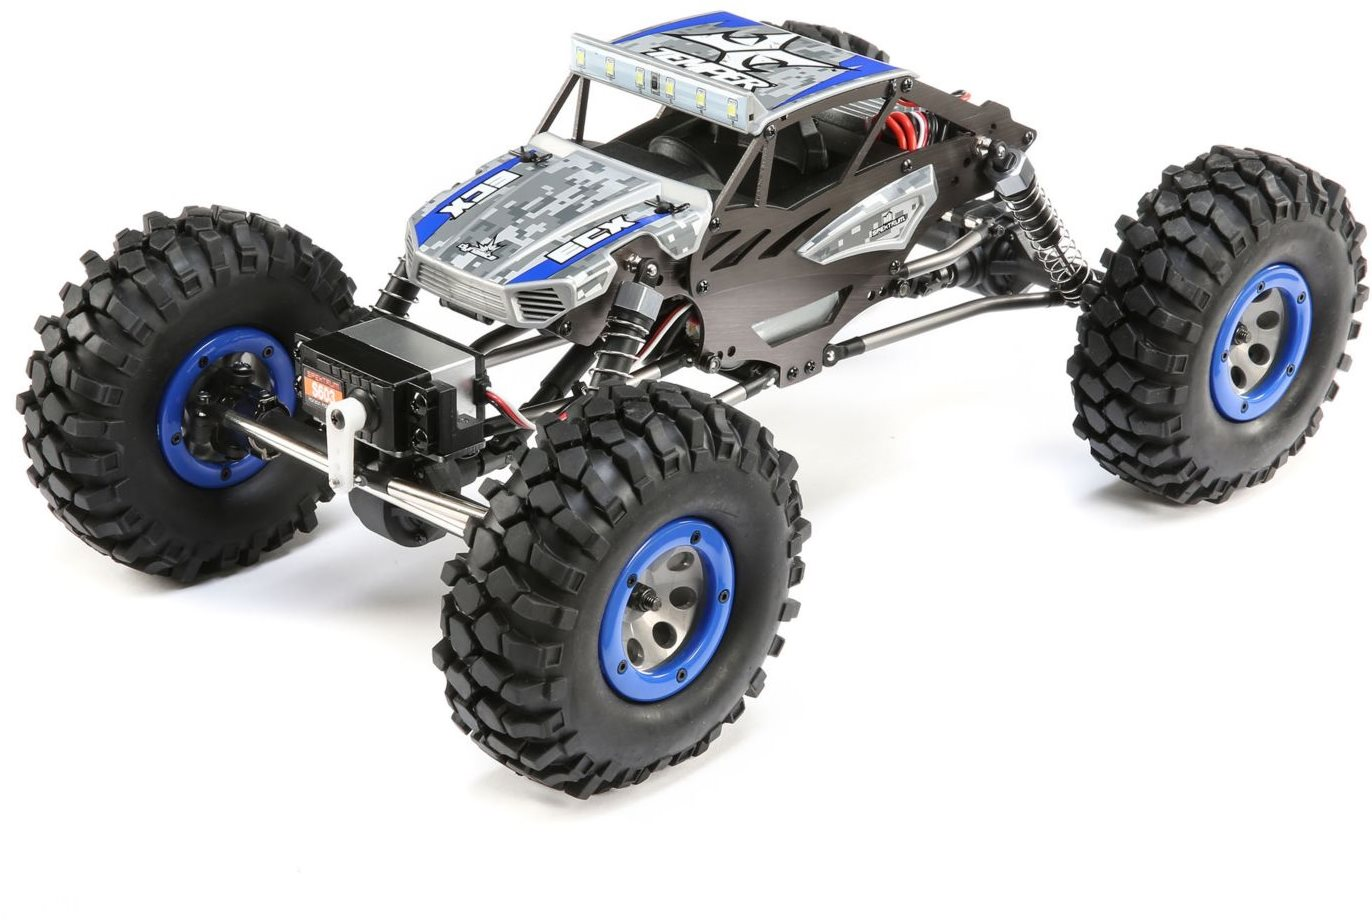 ECX 1/18 4WD Temper Gen 2, Brushed: Blue RTR